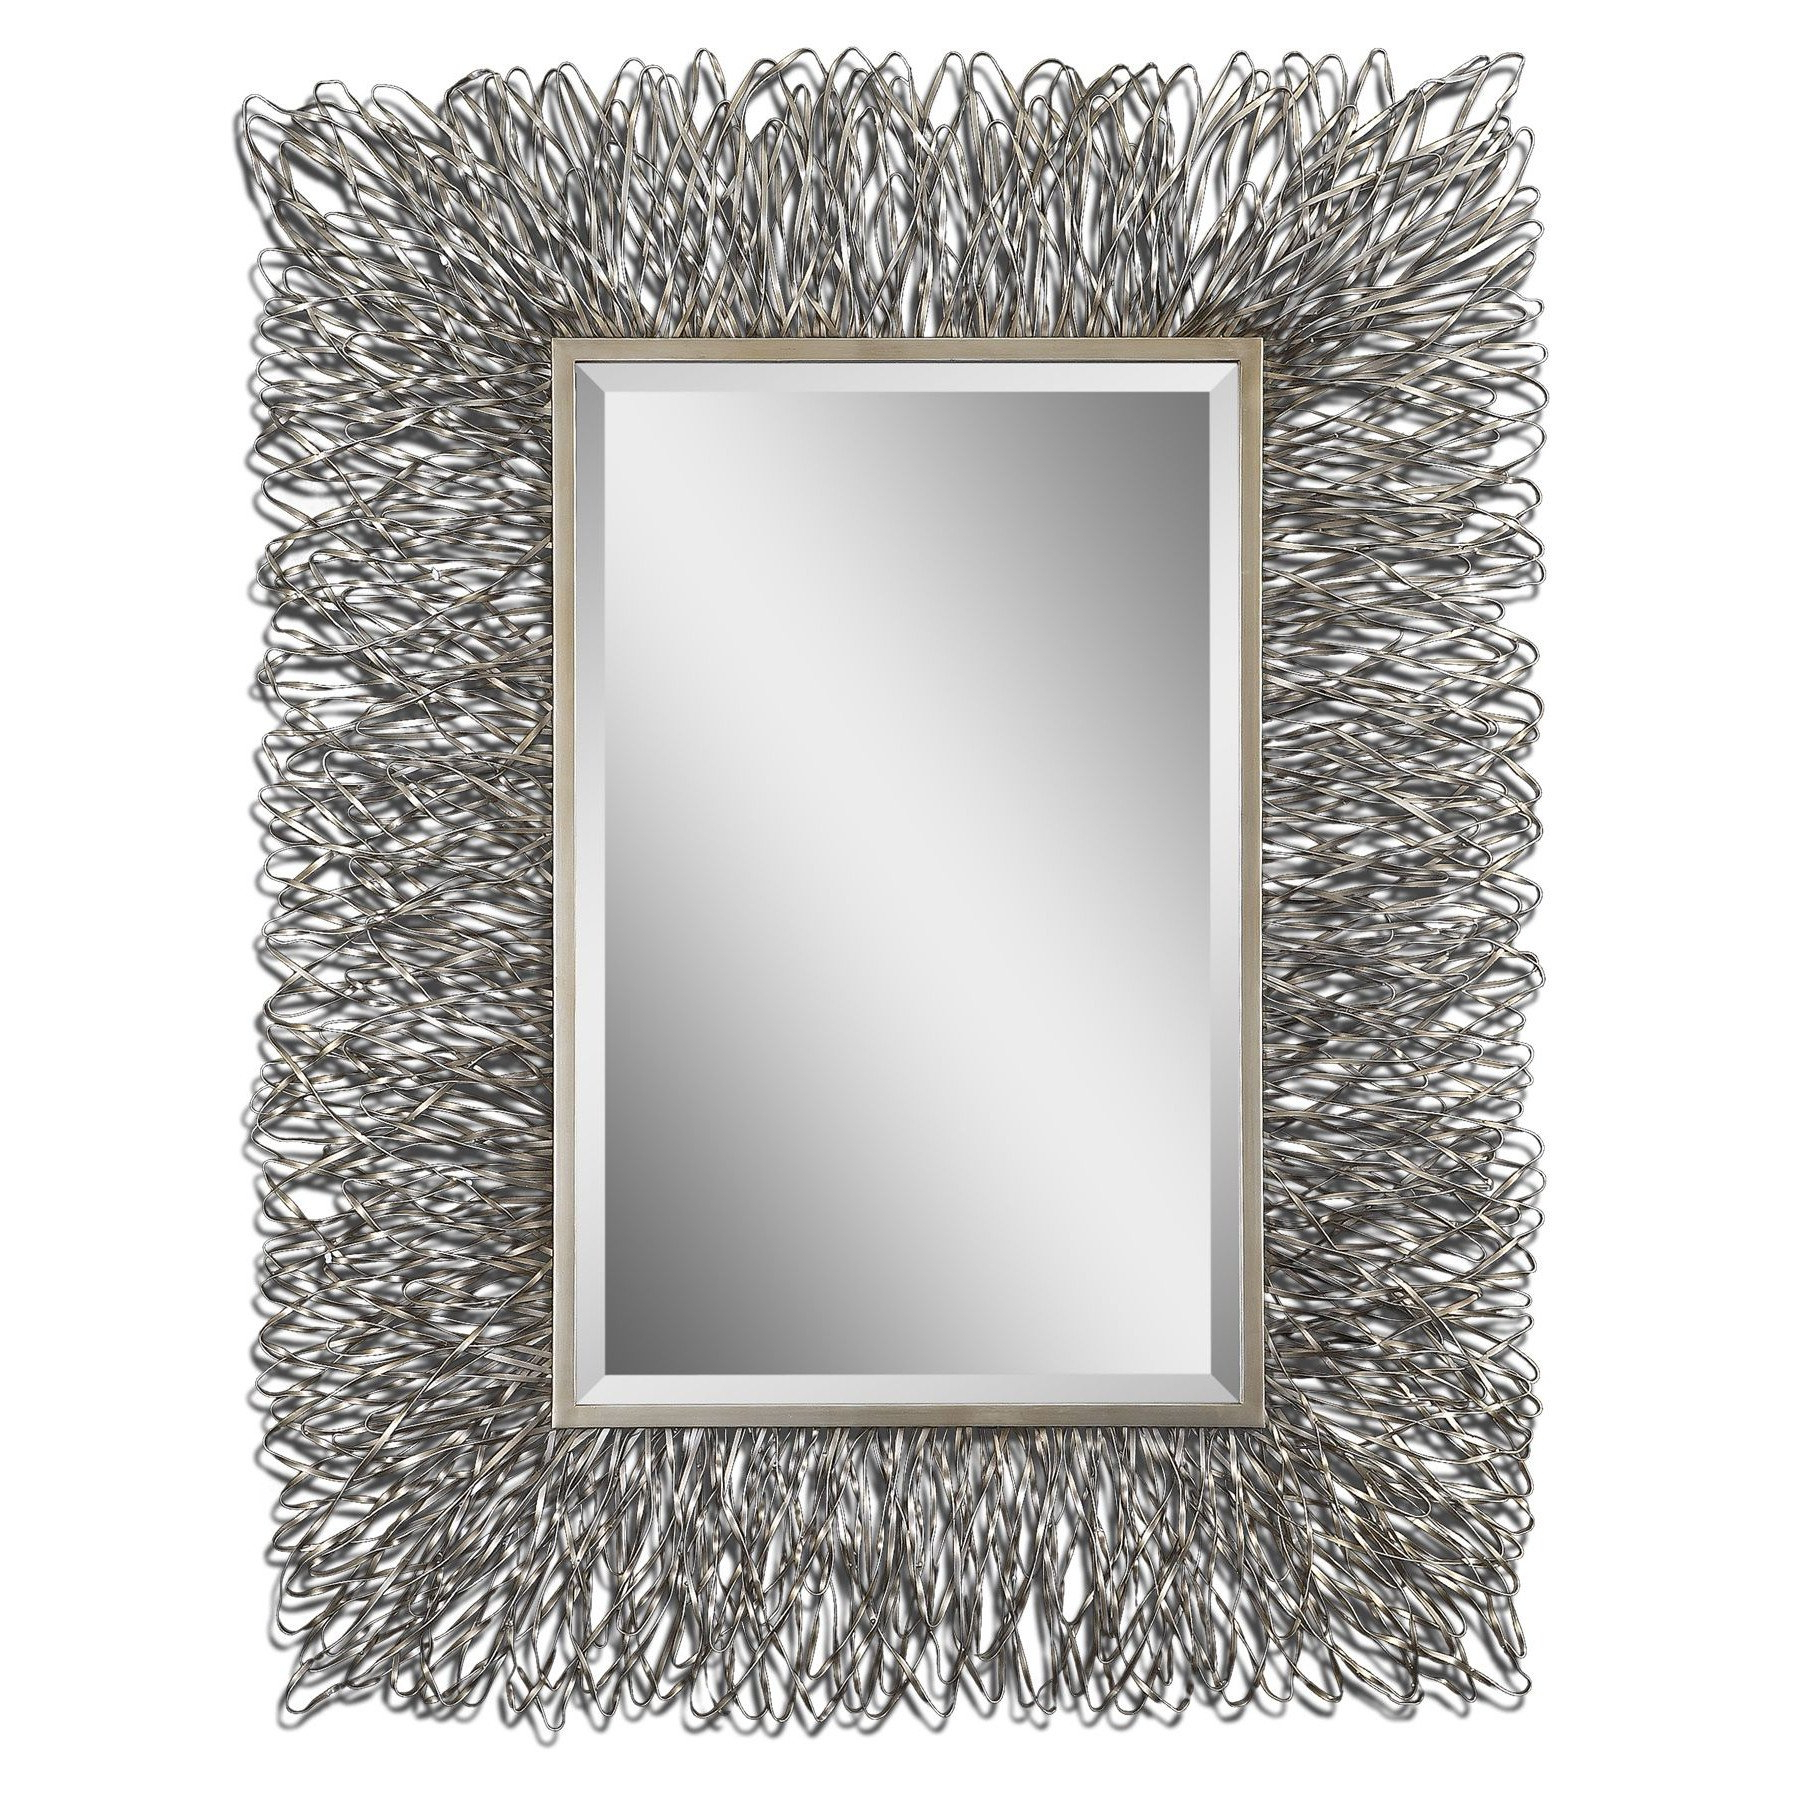 Famous Decorative Rectangular Wall Mirrors Throughout Decorative Wall Mirrors Wade Logan Decorative Wall Mirror Skull (View 13 of 20)